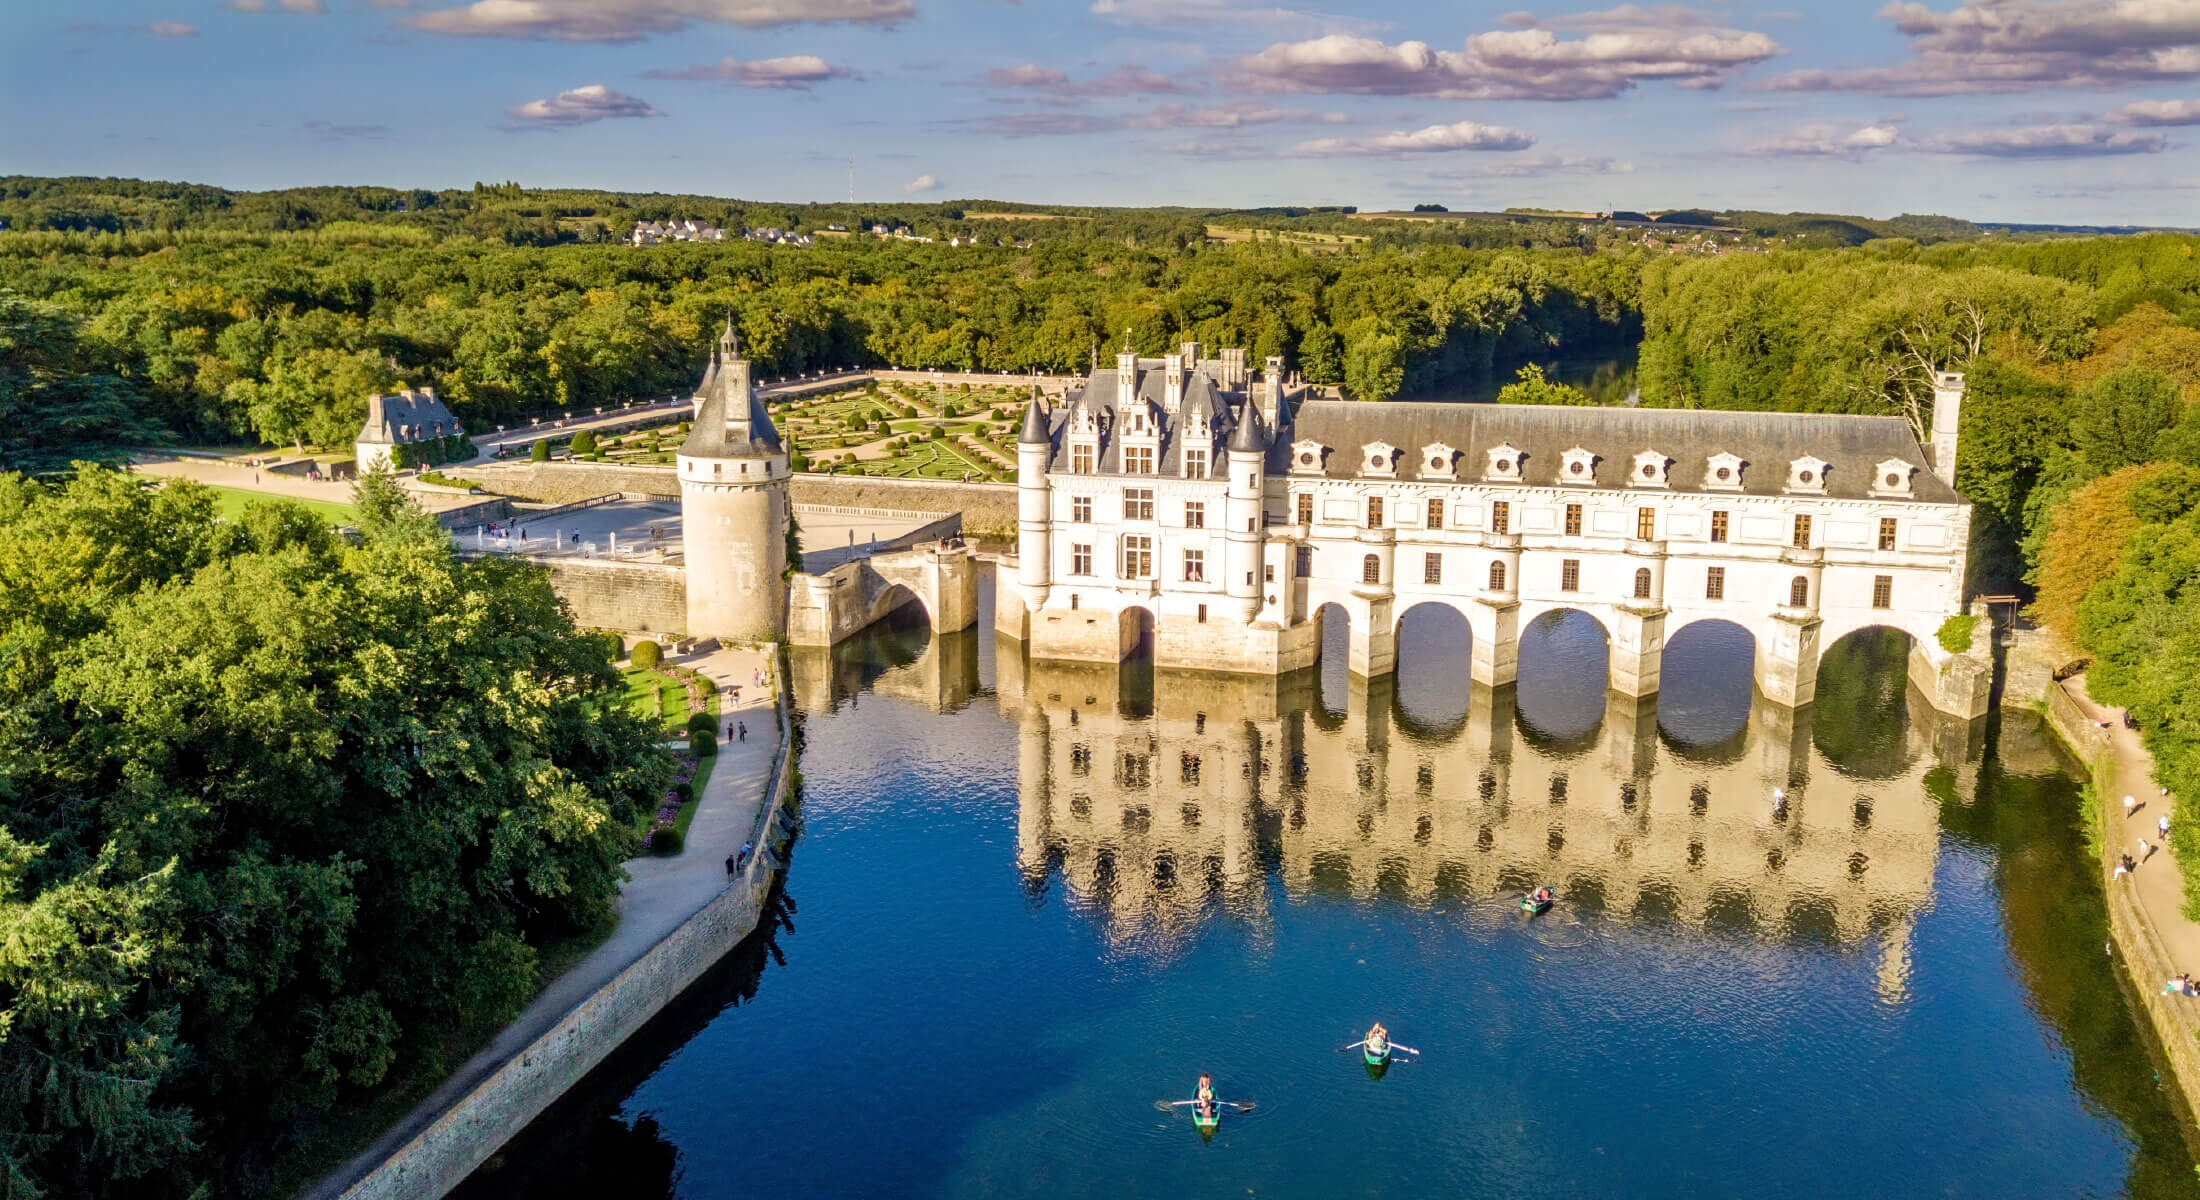 Aerial view of a European chateau over a river